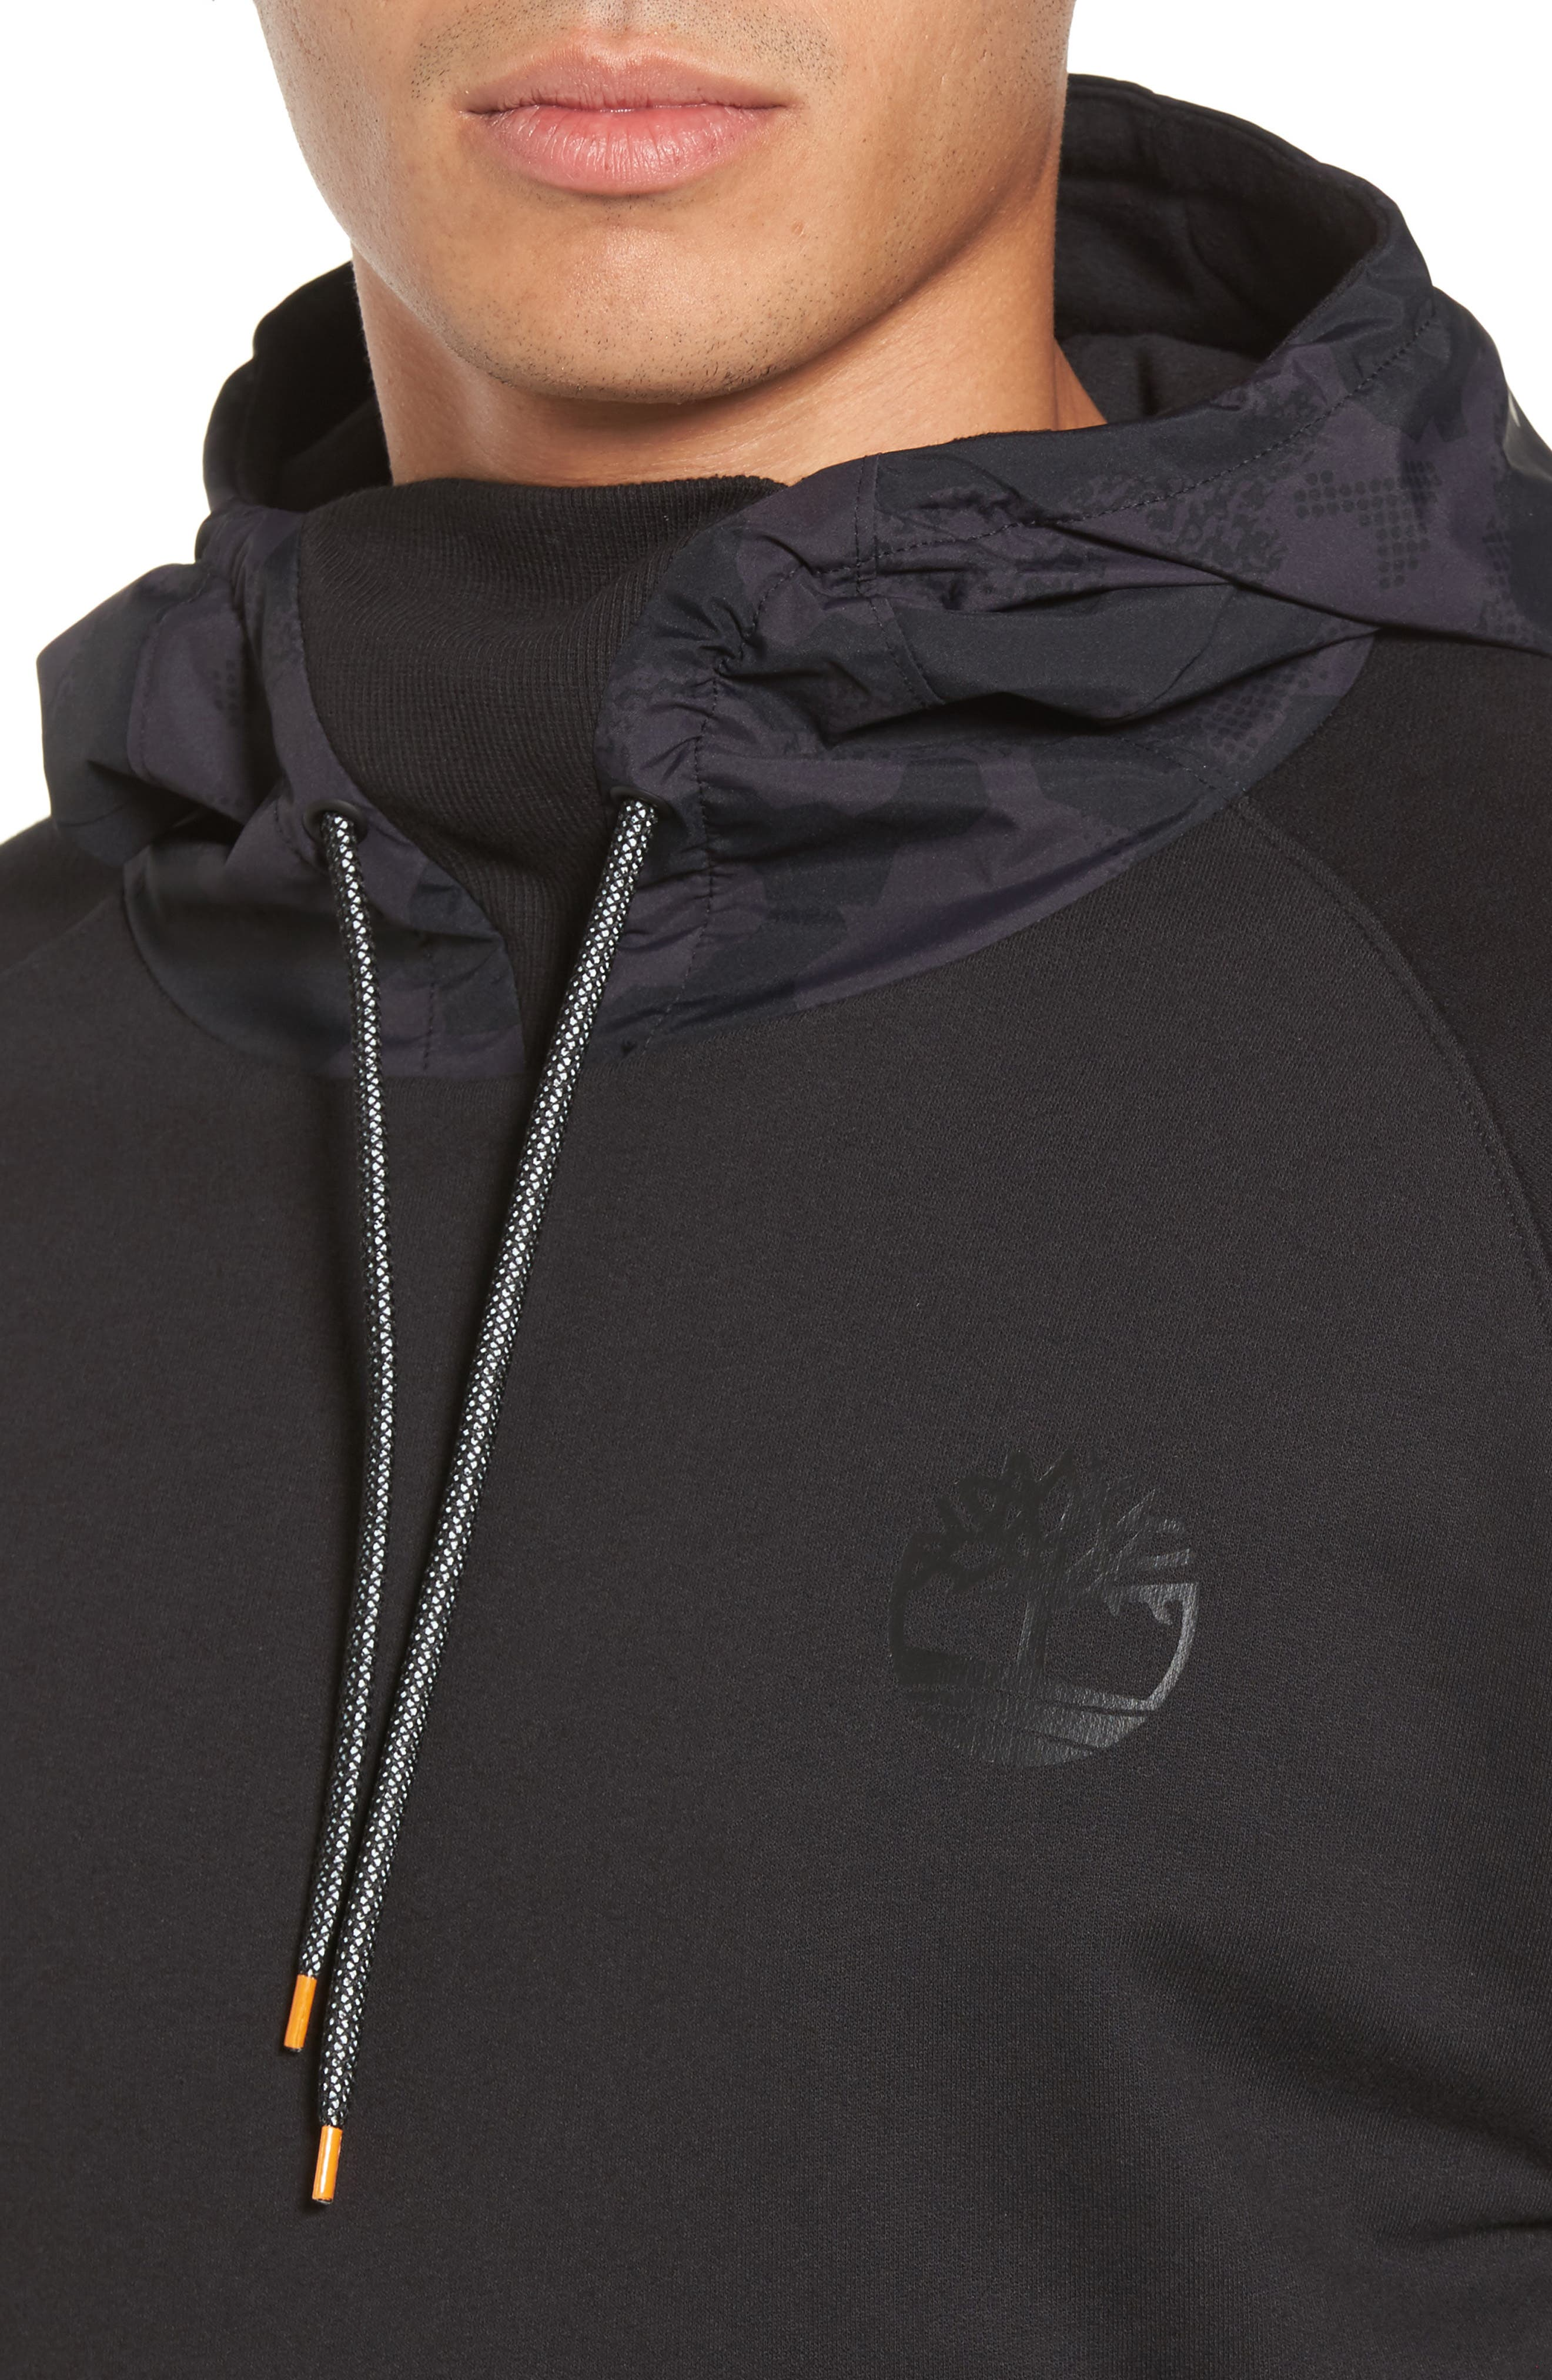 Mixed Media Oversize Hoodie,                             Alternate thumbnail 4, color,                             001